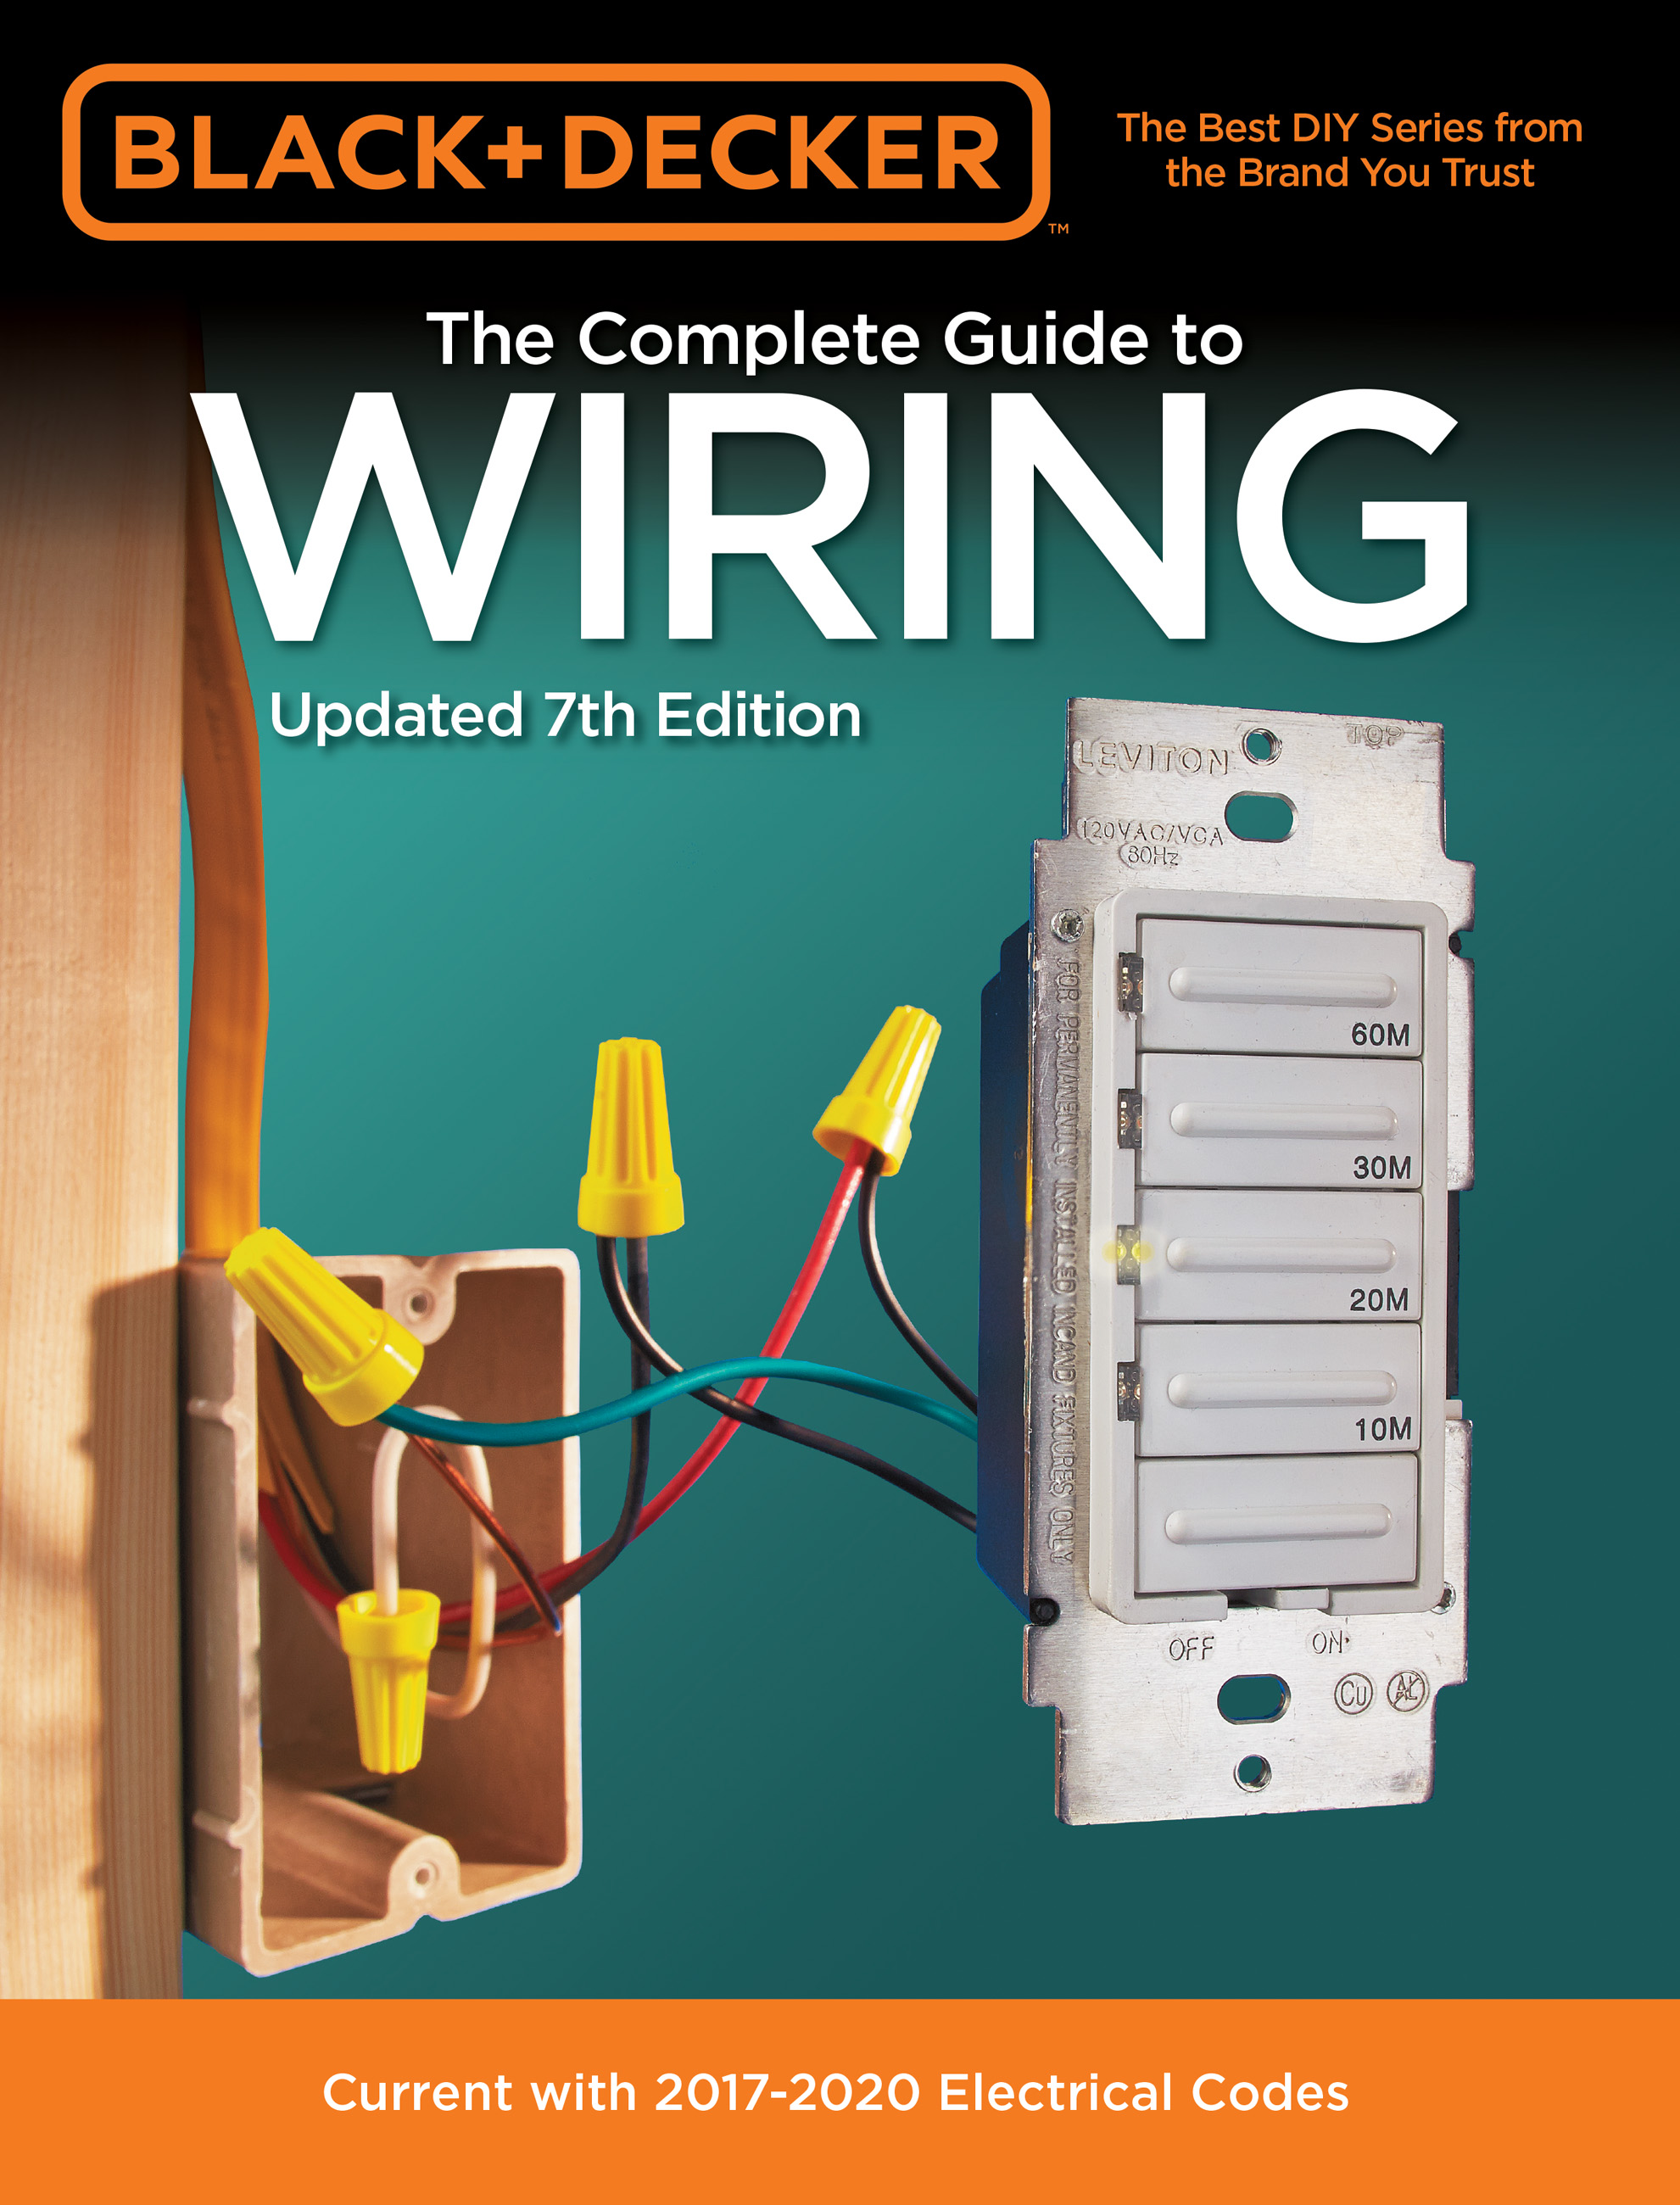 hight resolution of black decker the complete guide to wiring updated 7th edition current with 2017 2020 electrical codes walmart com